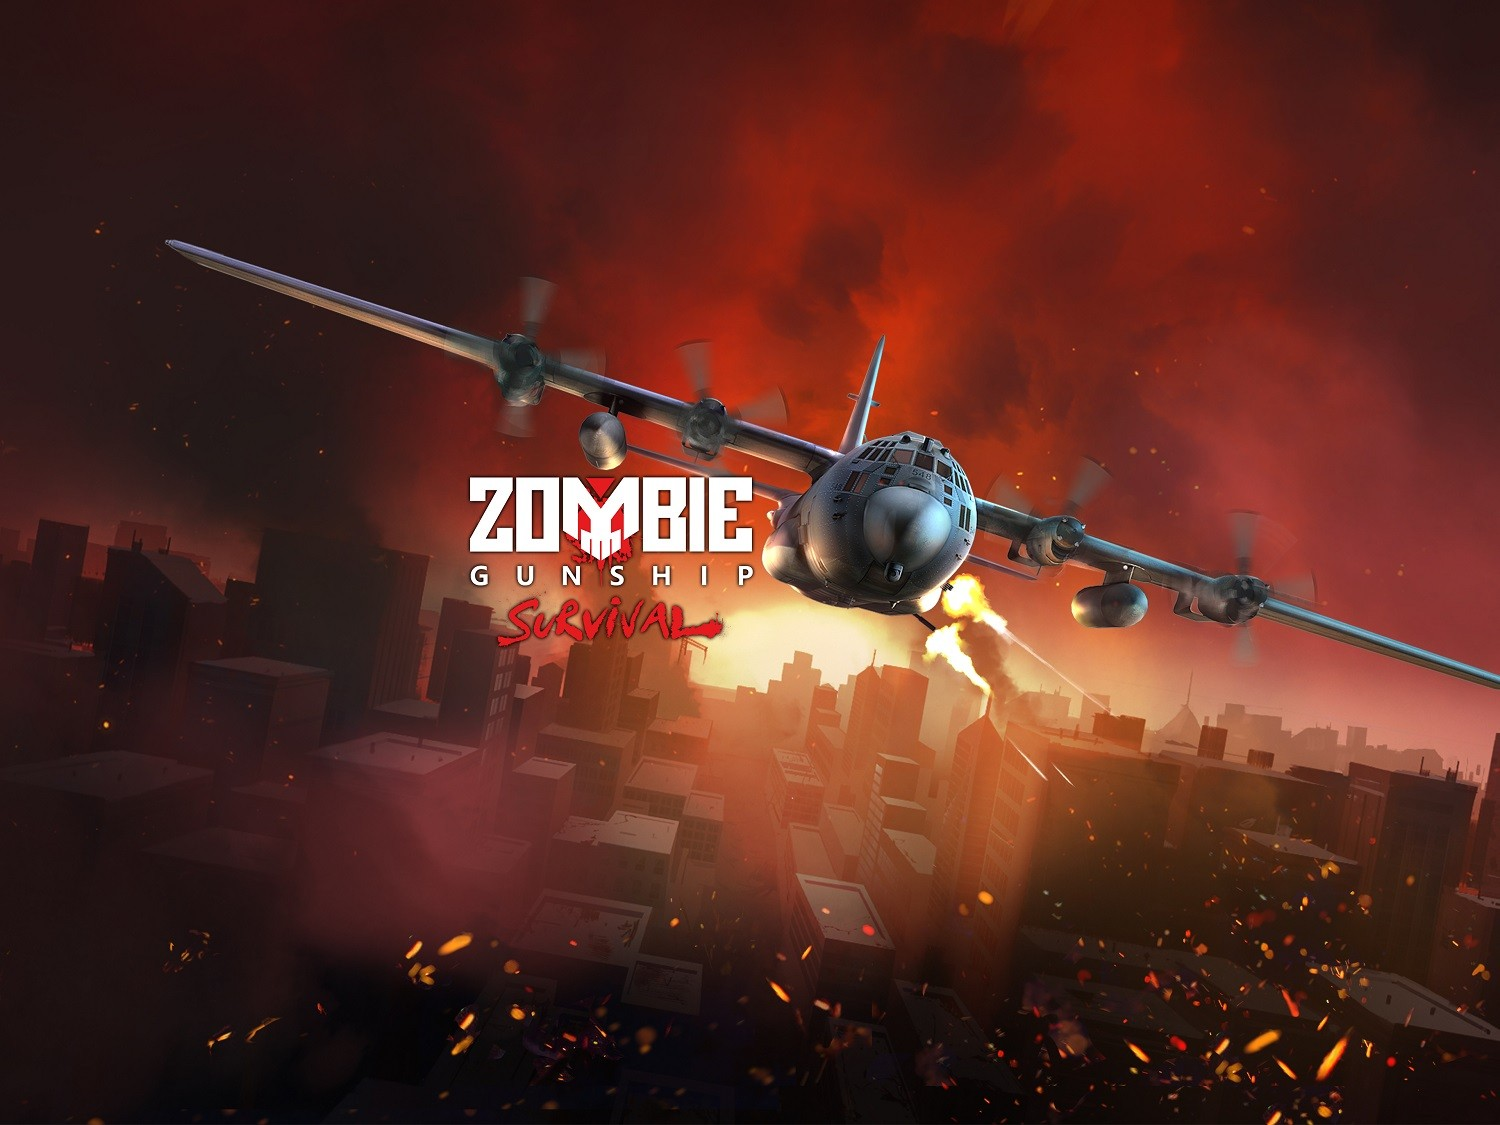 How To Get Money And Ammo In Zombie Gunship